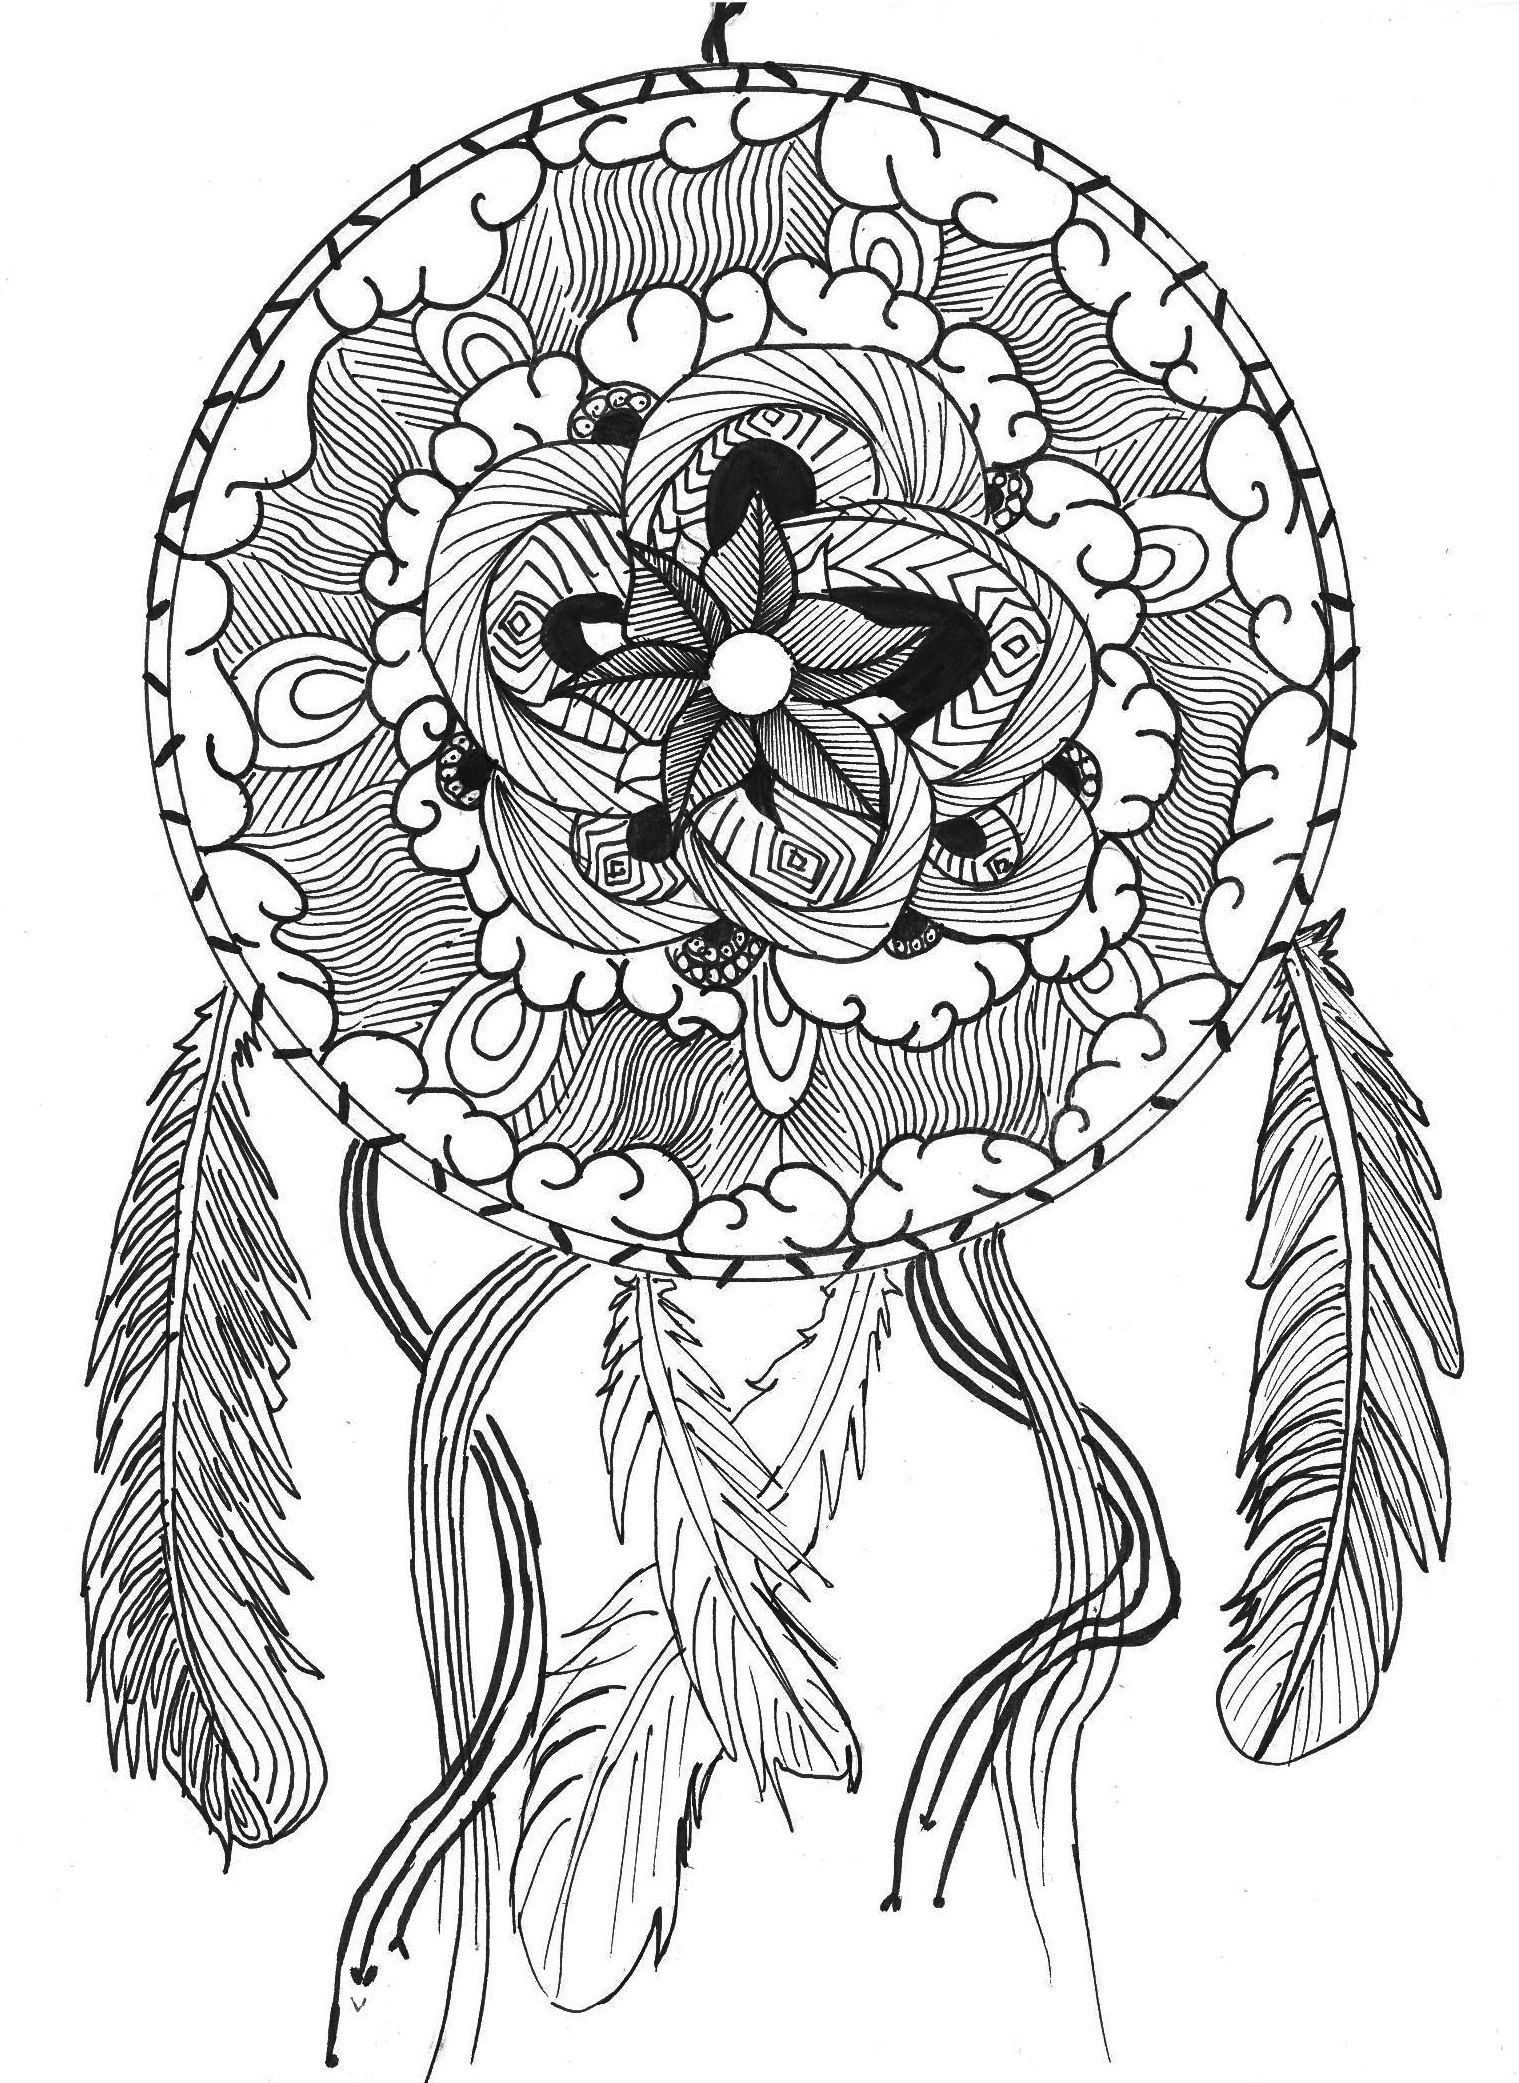 Pin by ColoringsWorld.com on Mandala Coloring Pages | Pinterest ...